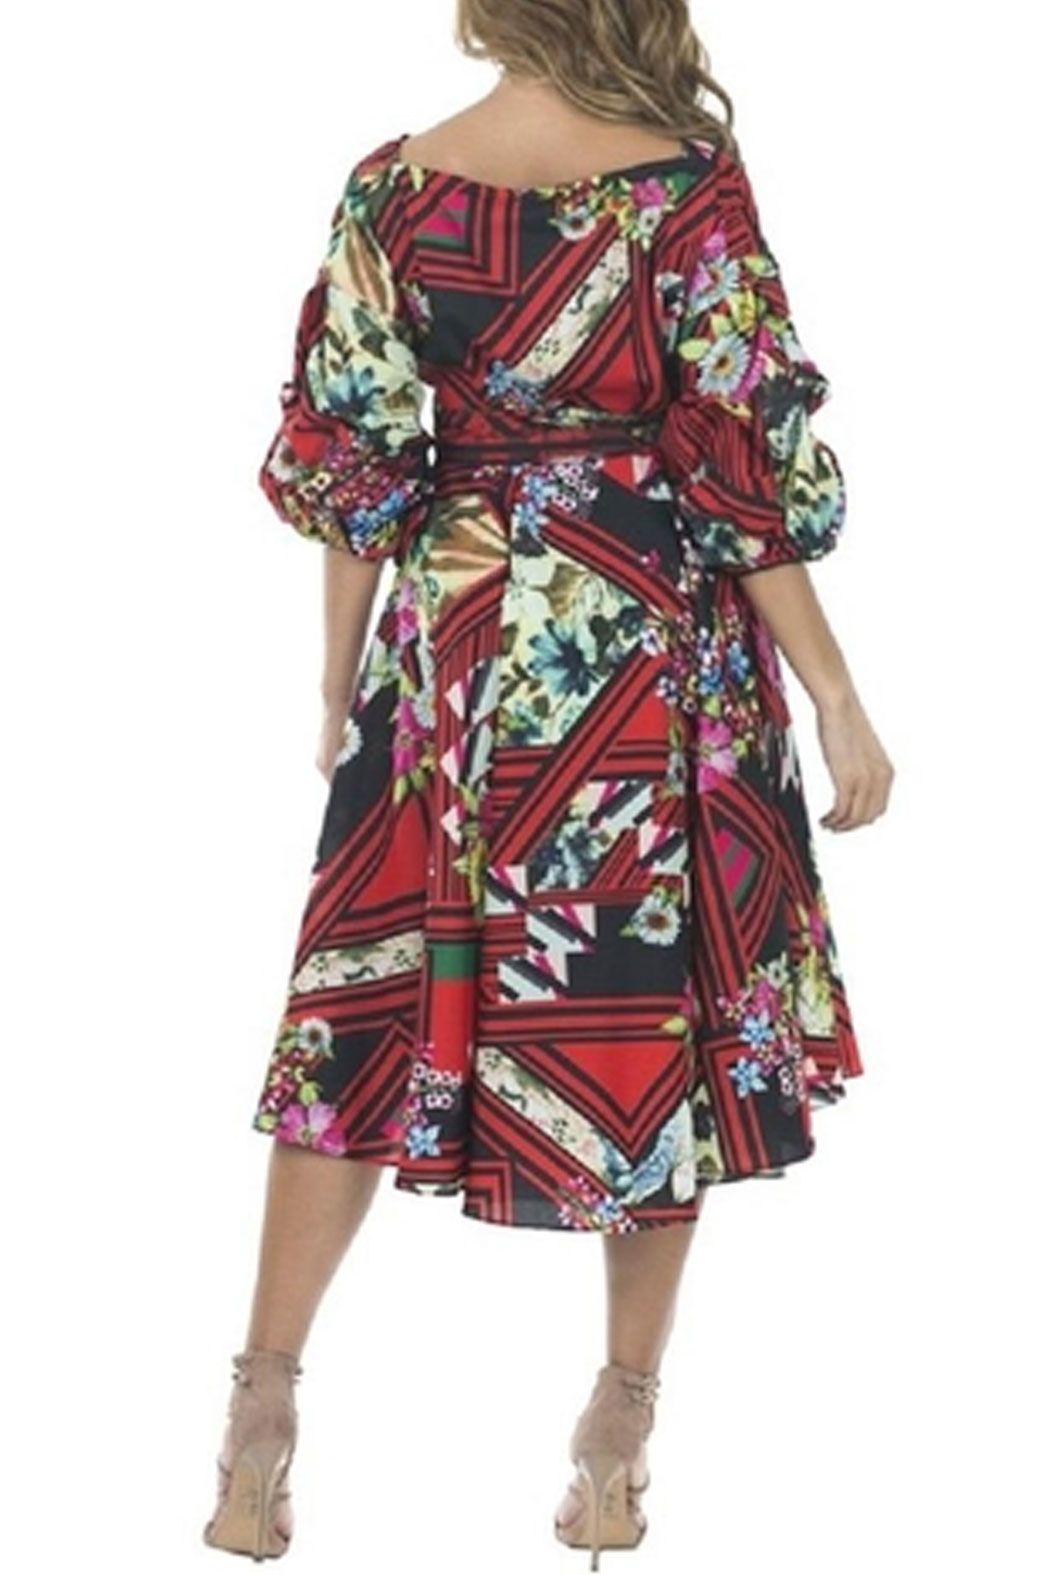 cq by cq Floral Flowy Dress - Front Full Image